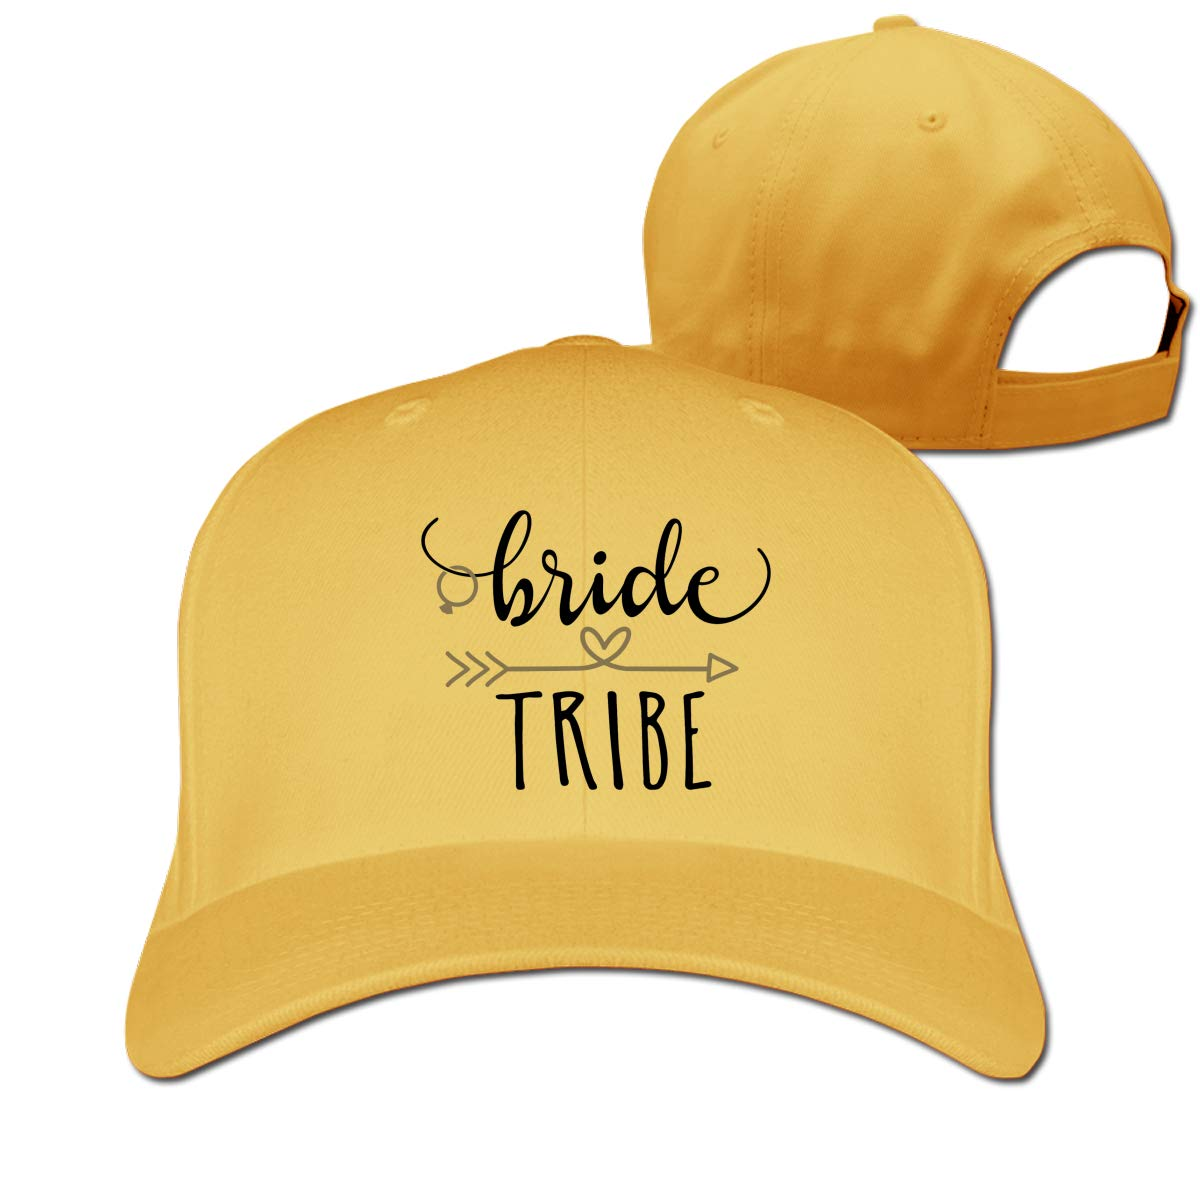 Bride Tribe Top Denim Polo Style Adjustable Cap Jessica Casual Baseball Hat Sun Protection Curve Brim